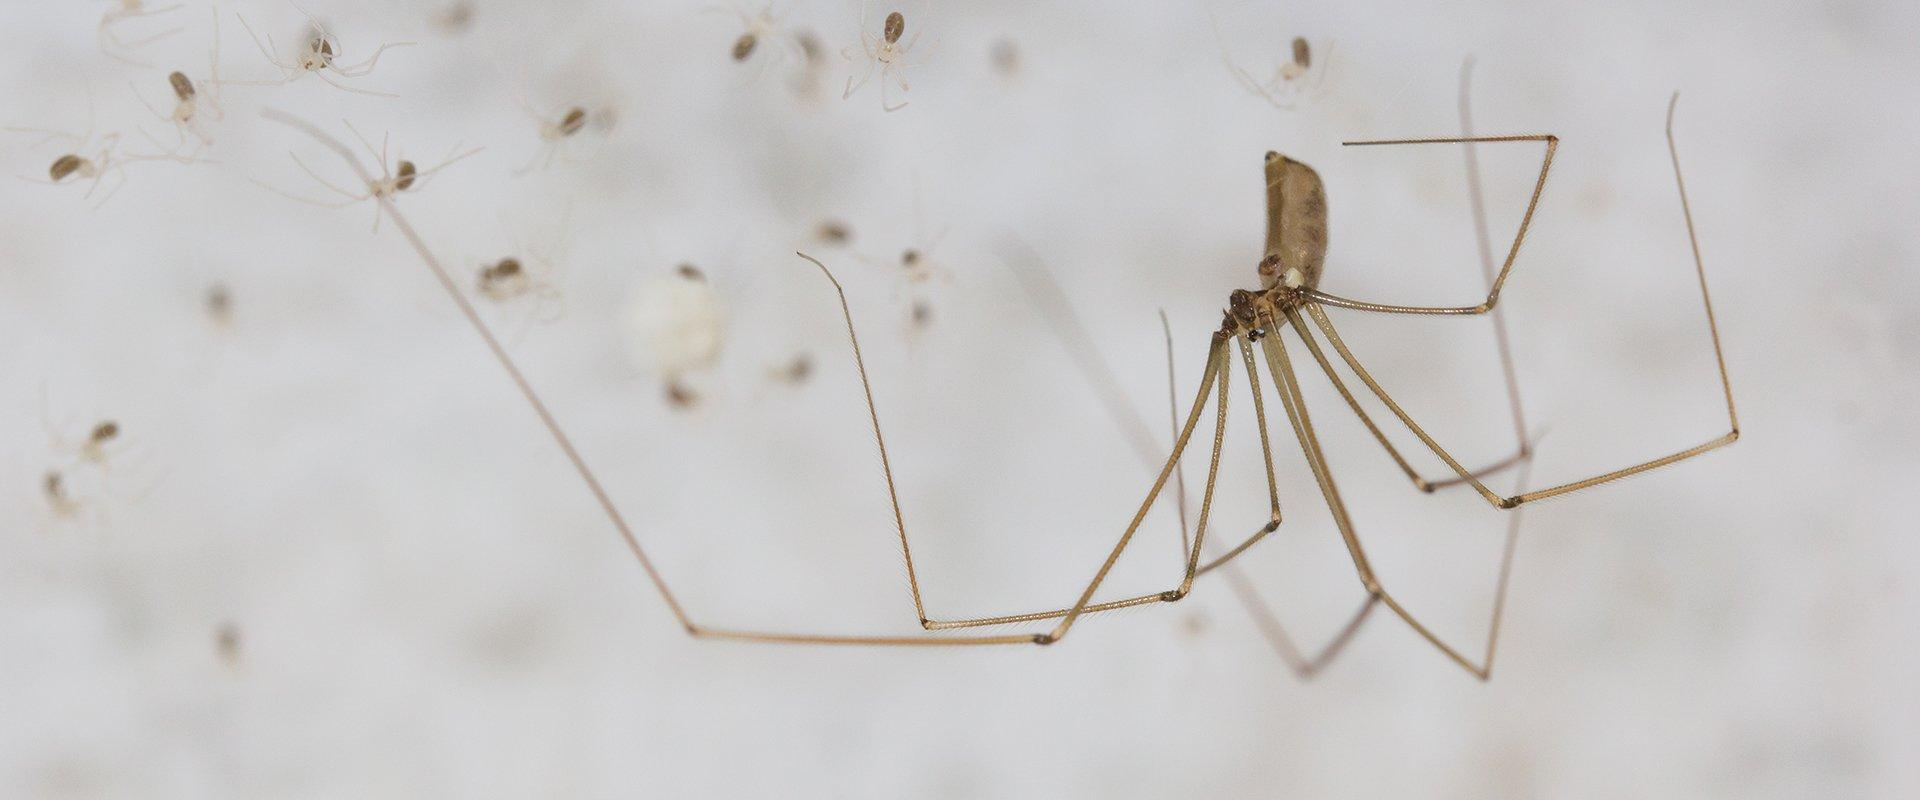 adult cellar spider with babies